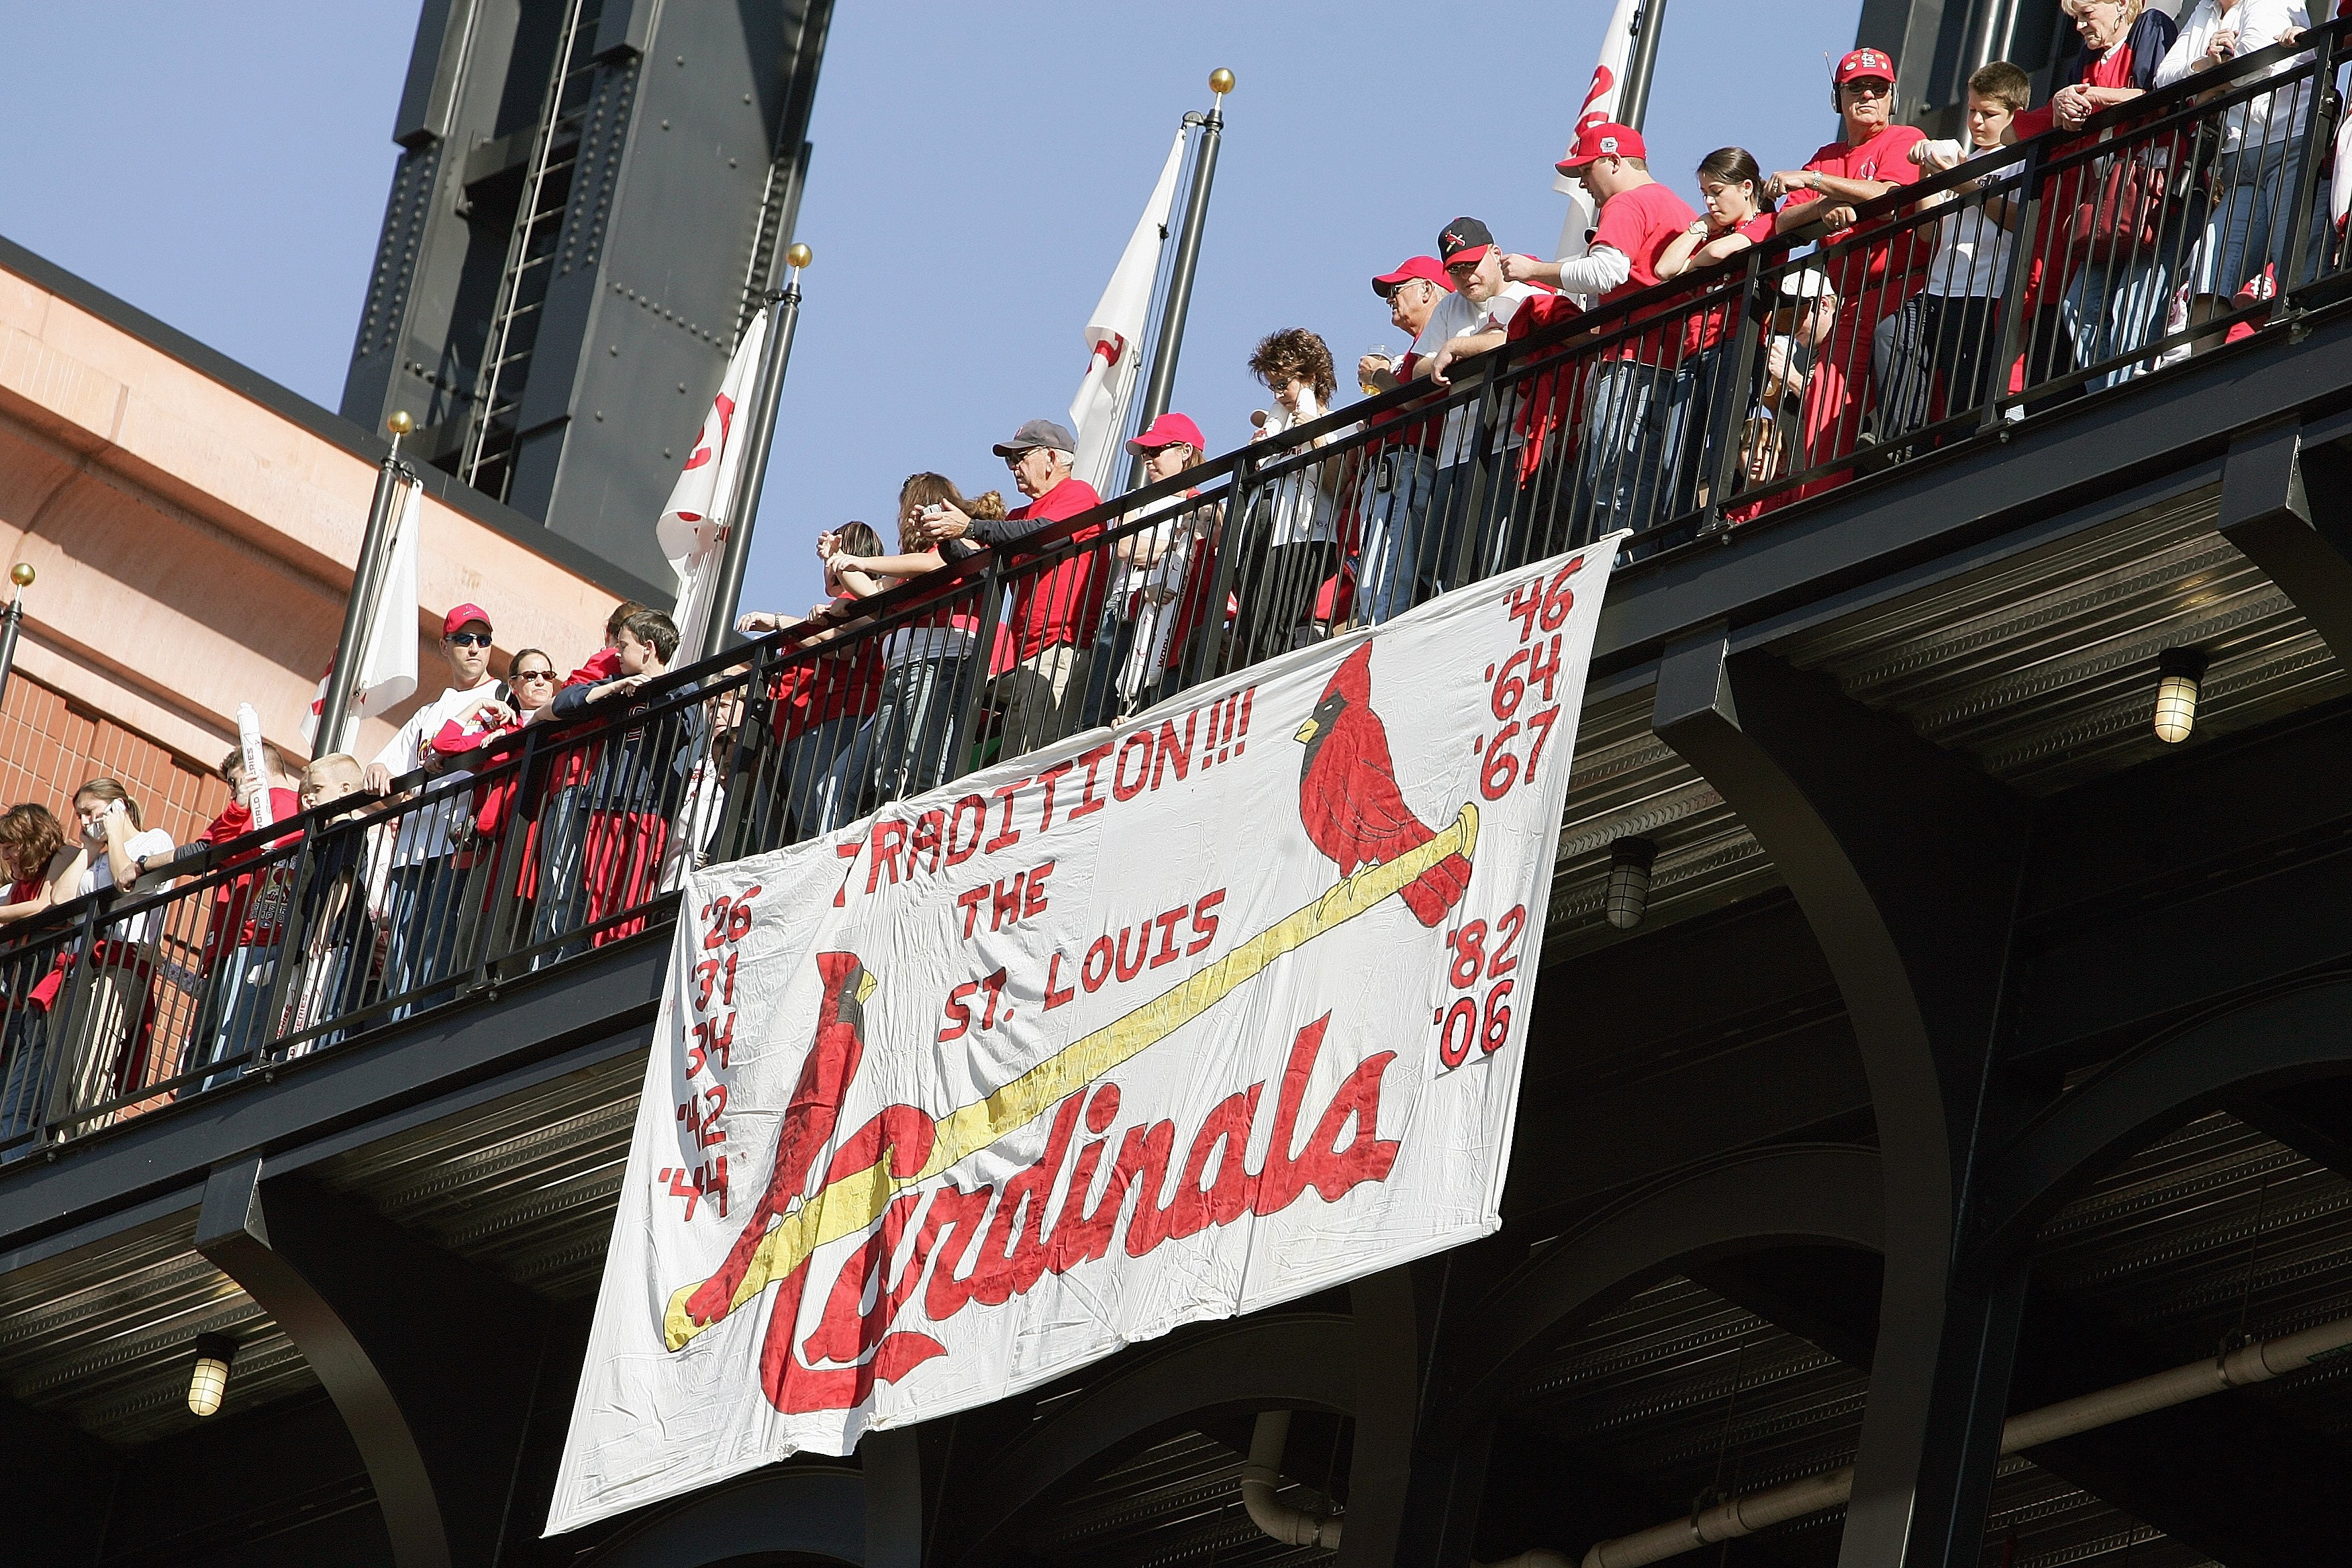 ST. LOUIS - OCTOBER 29:  Fans of the St. Louis Cardinals line the walkway above a hand made sign during the World Series Victory Parade and Rally on October 29, 2006 at Busch Stadium in St. Louis, Missouri.  (Photo by Elsa/Getty Images)